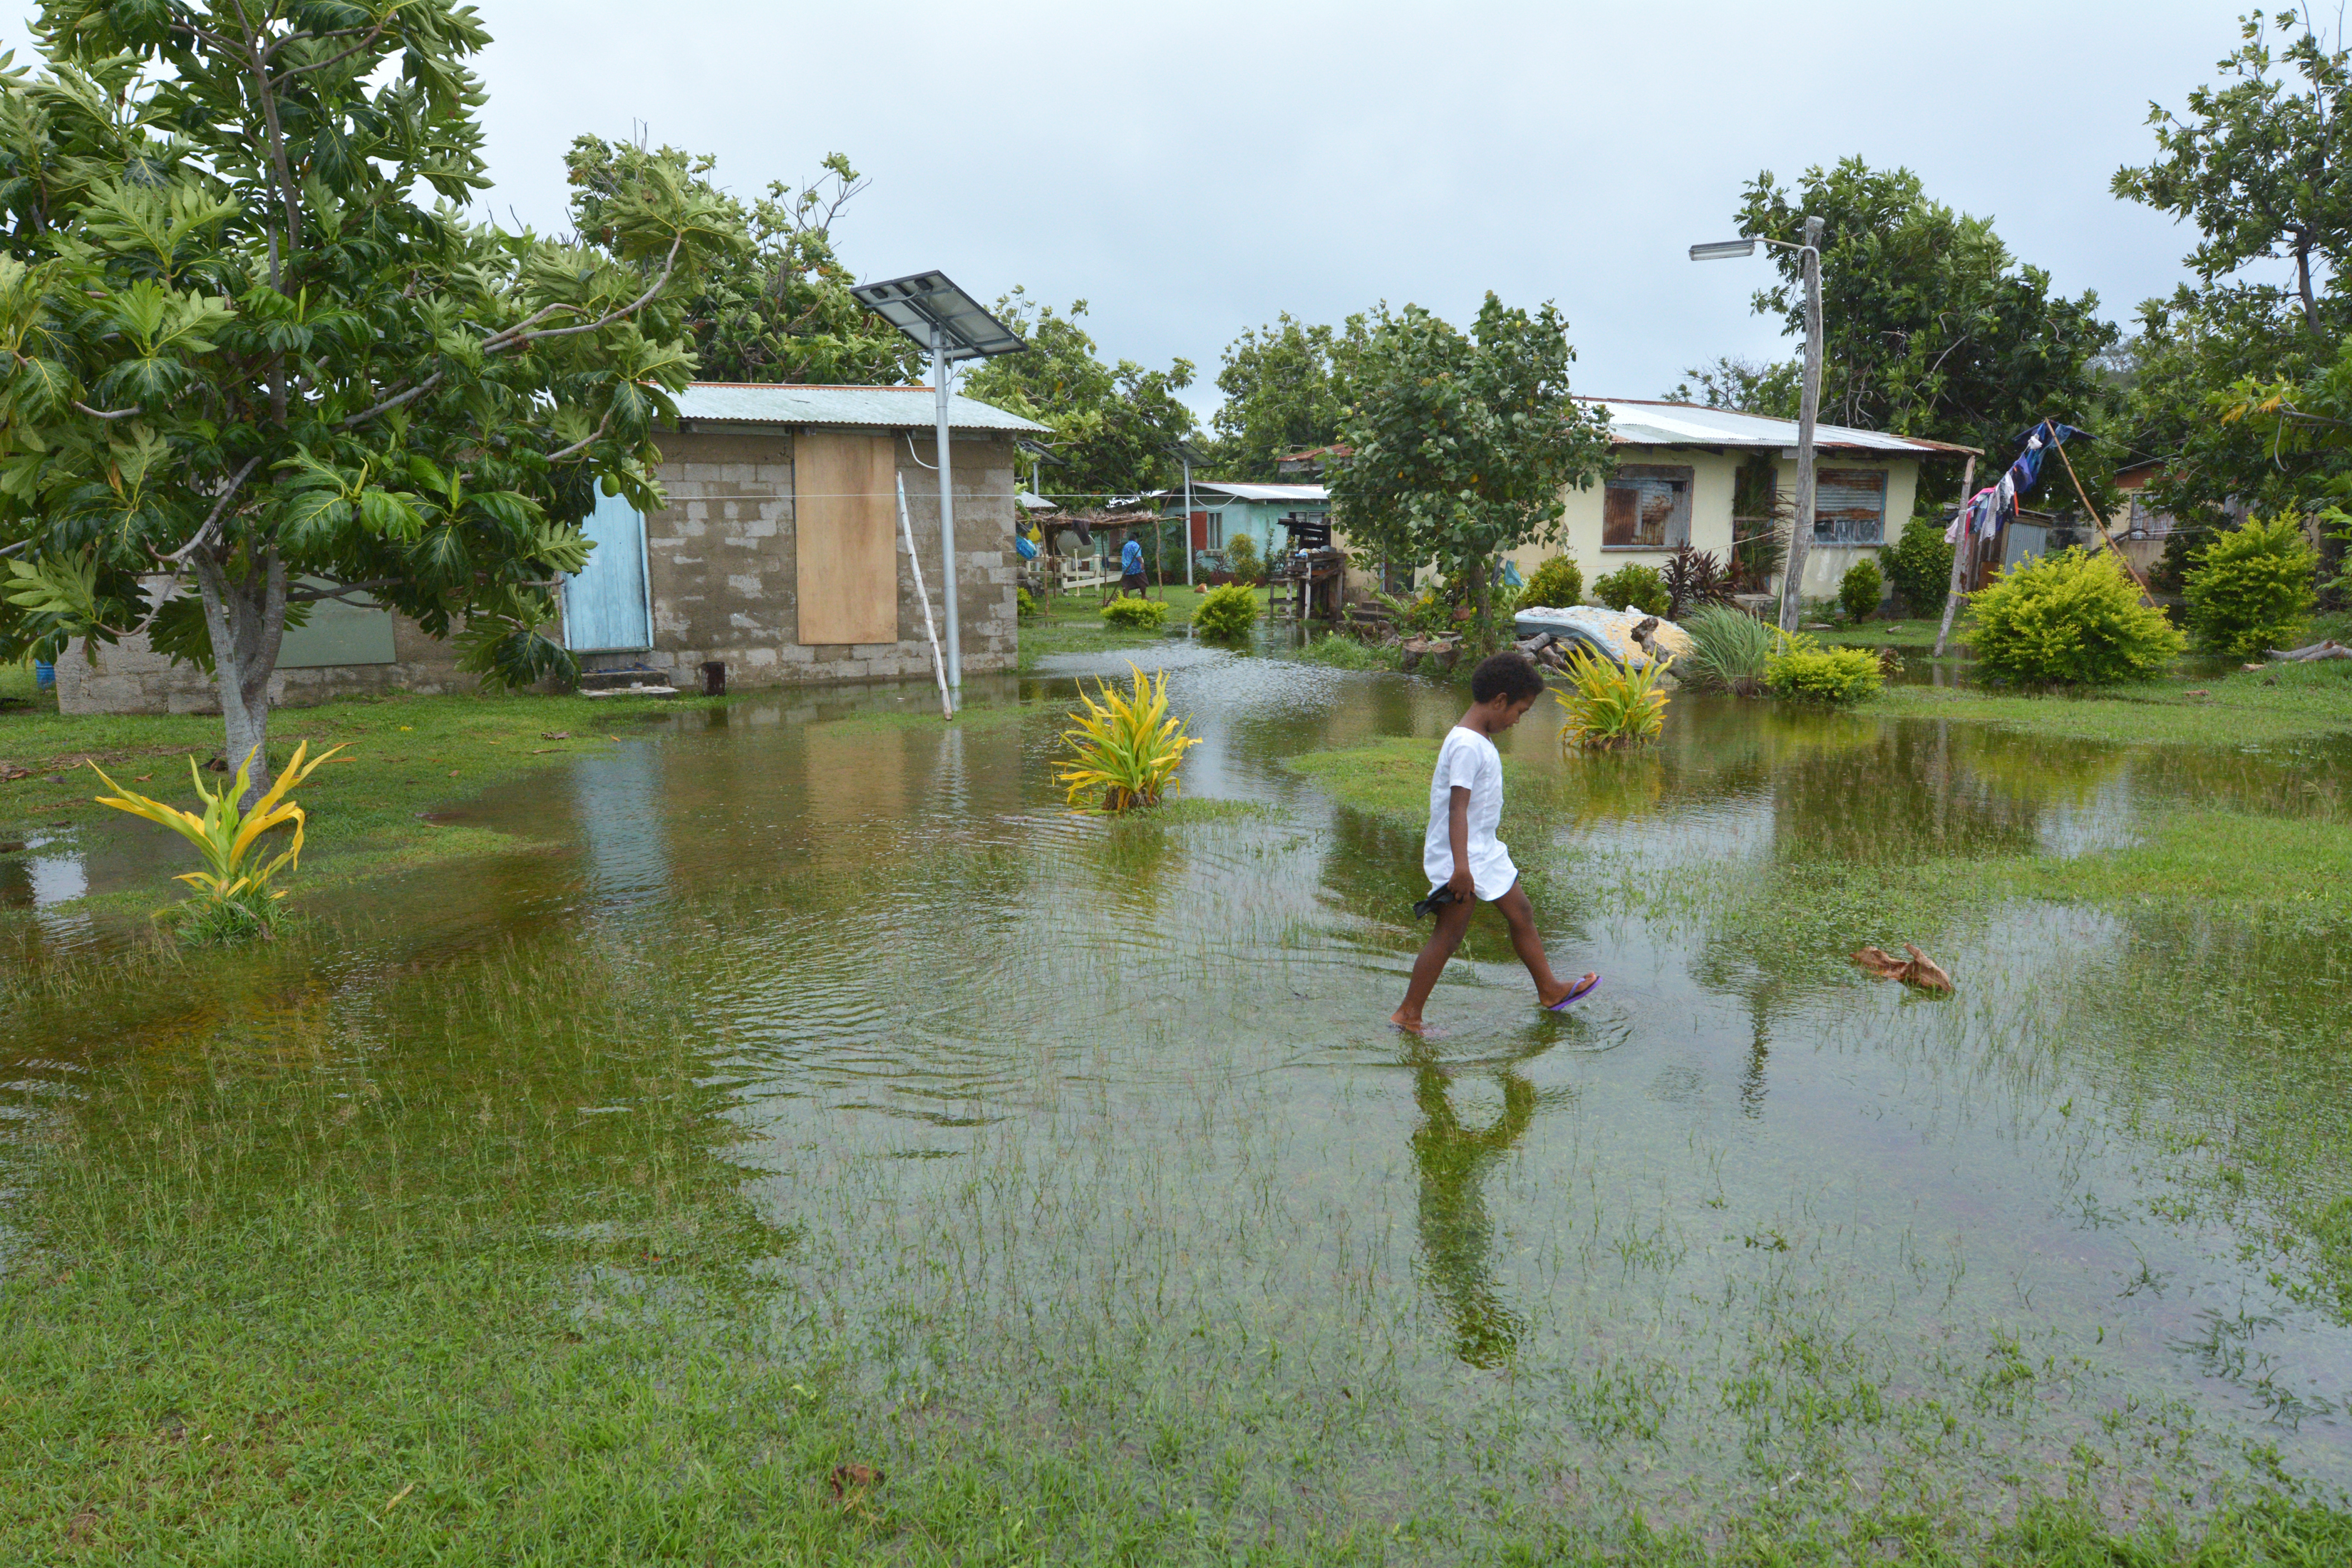 Indigenous Fijian girl walks in flooded land in Fiji.